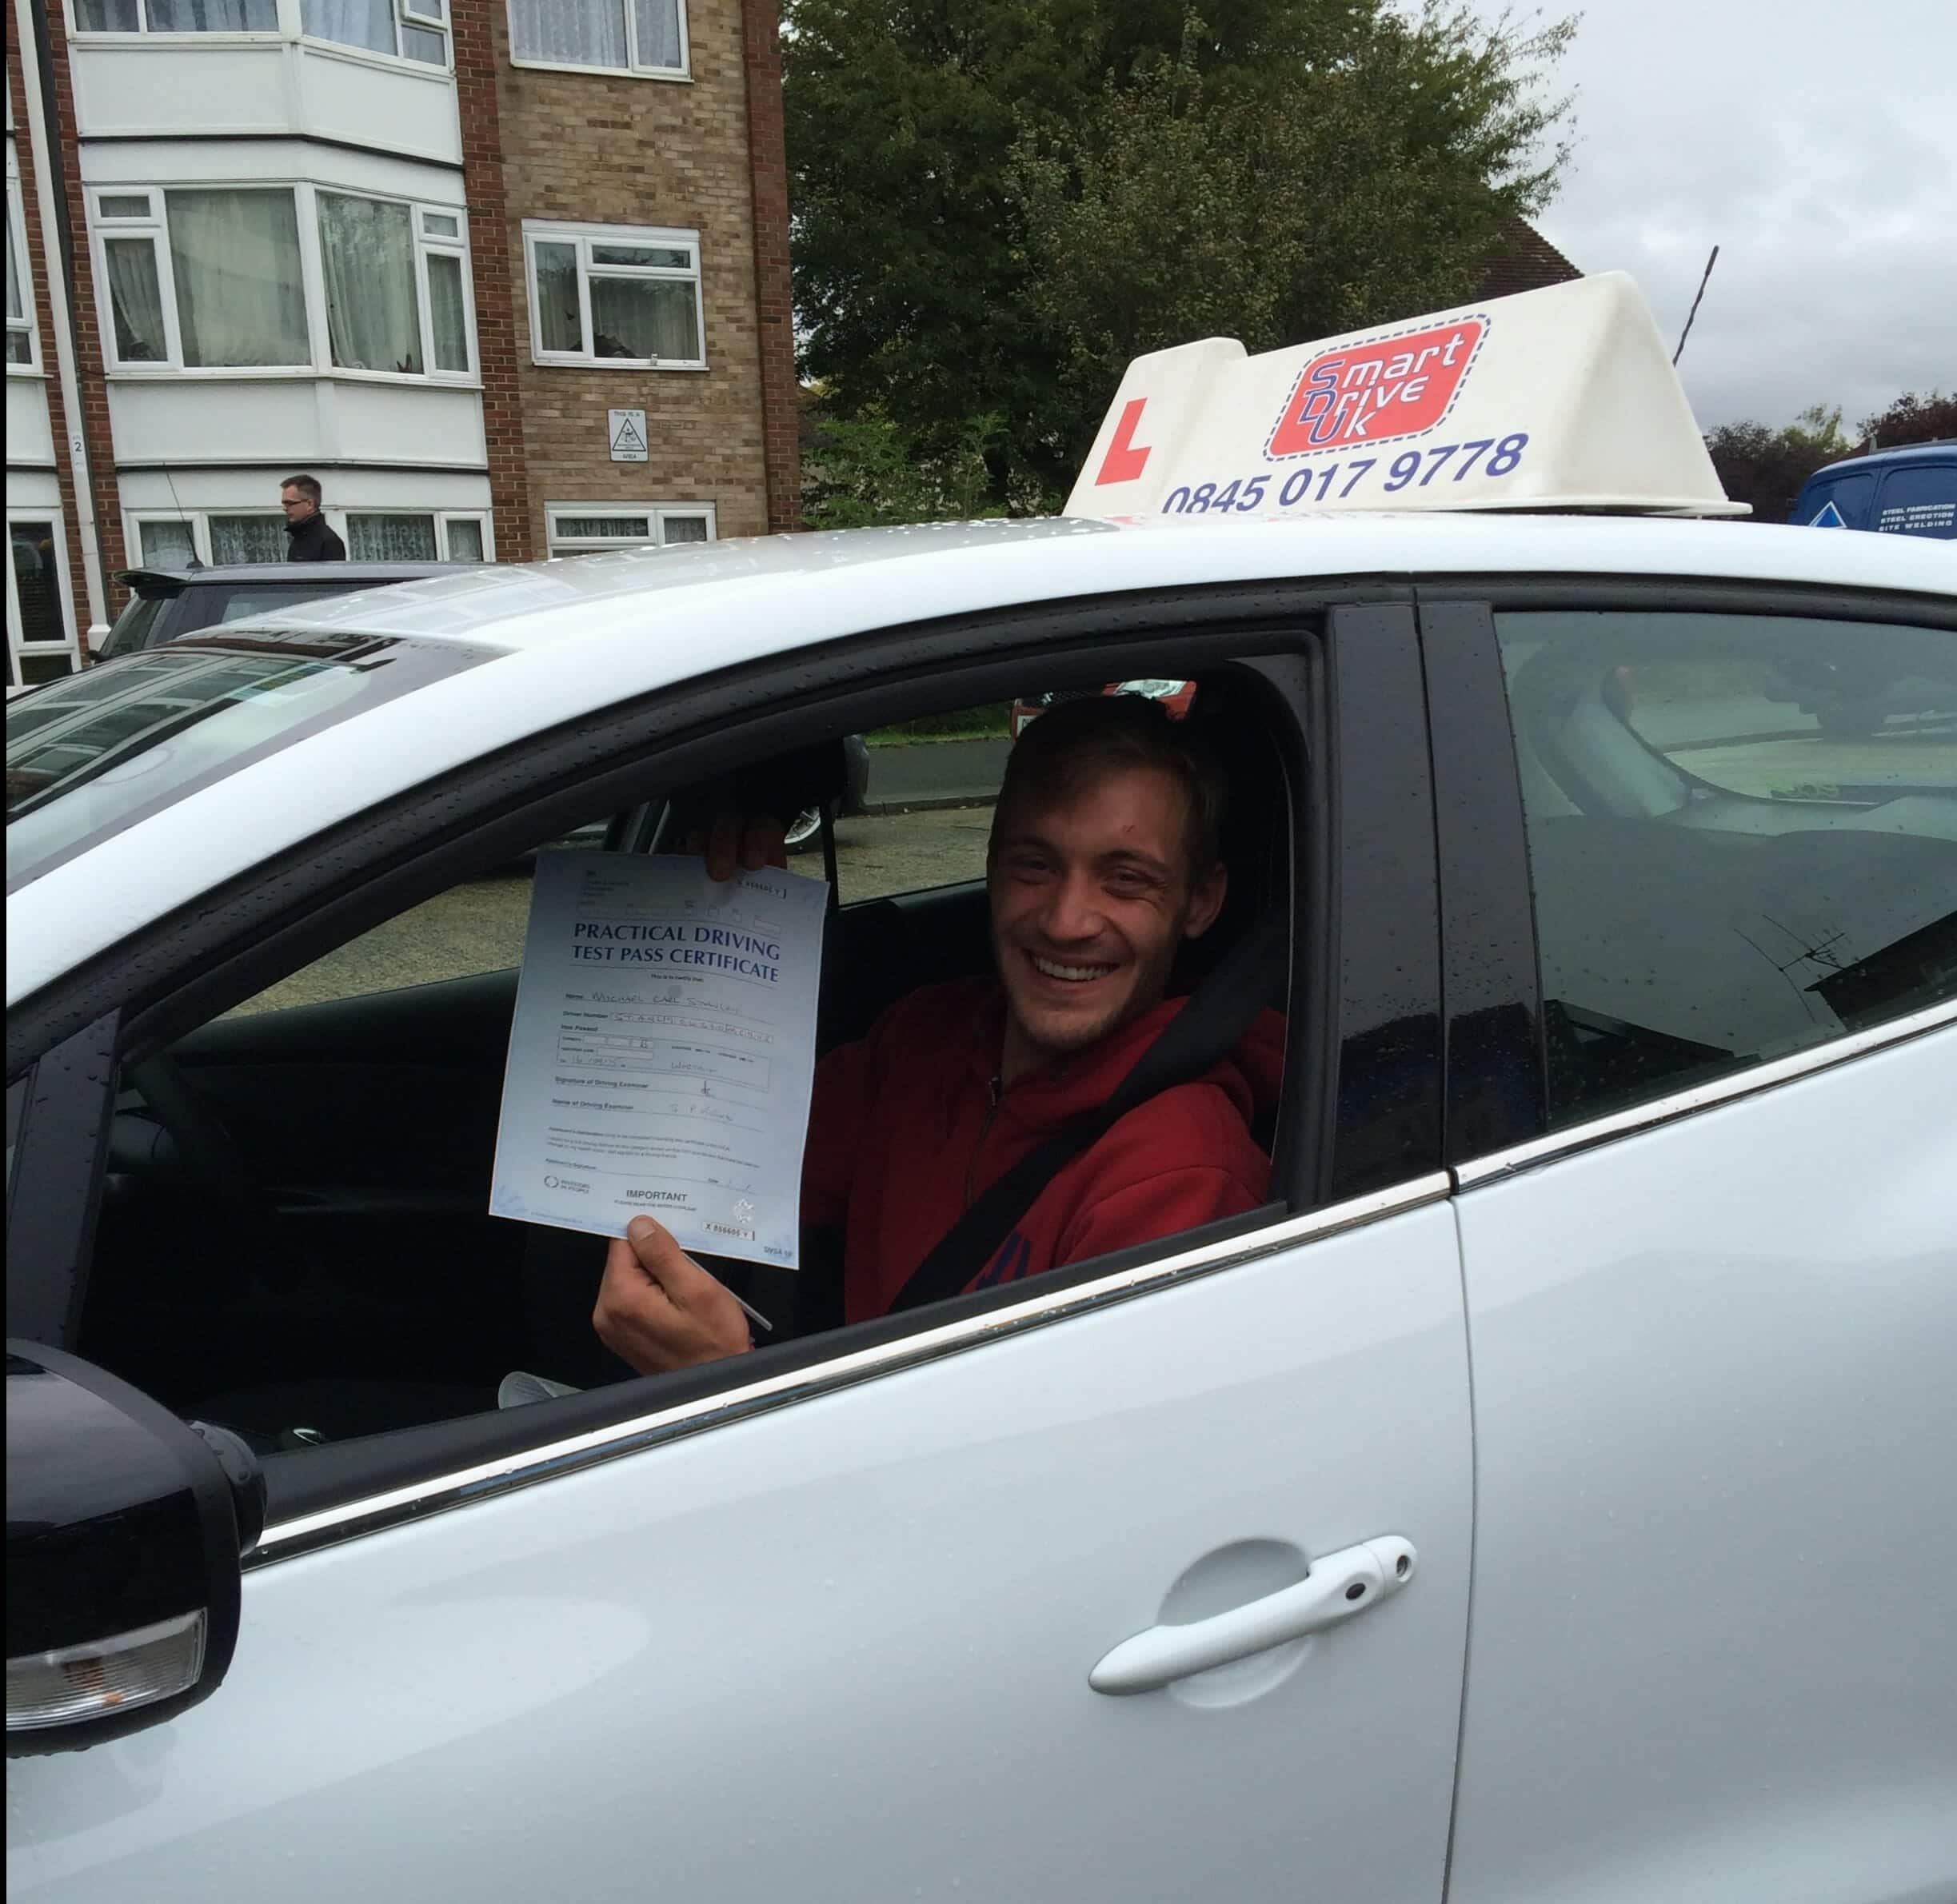 Congratulations to Michael from Worthing